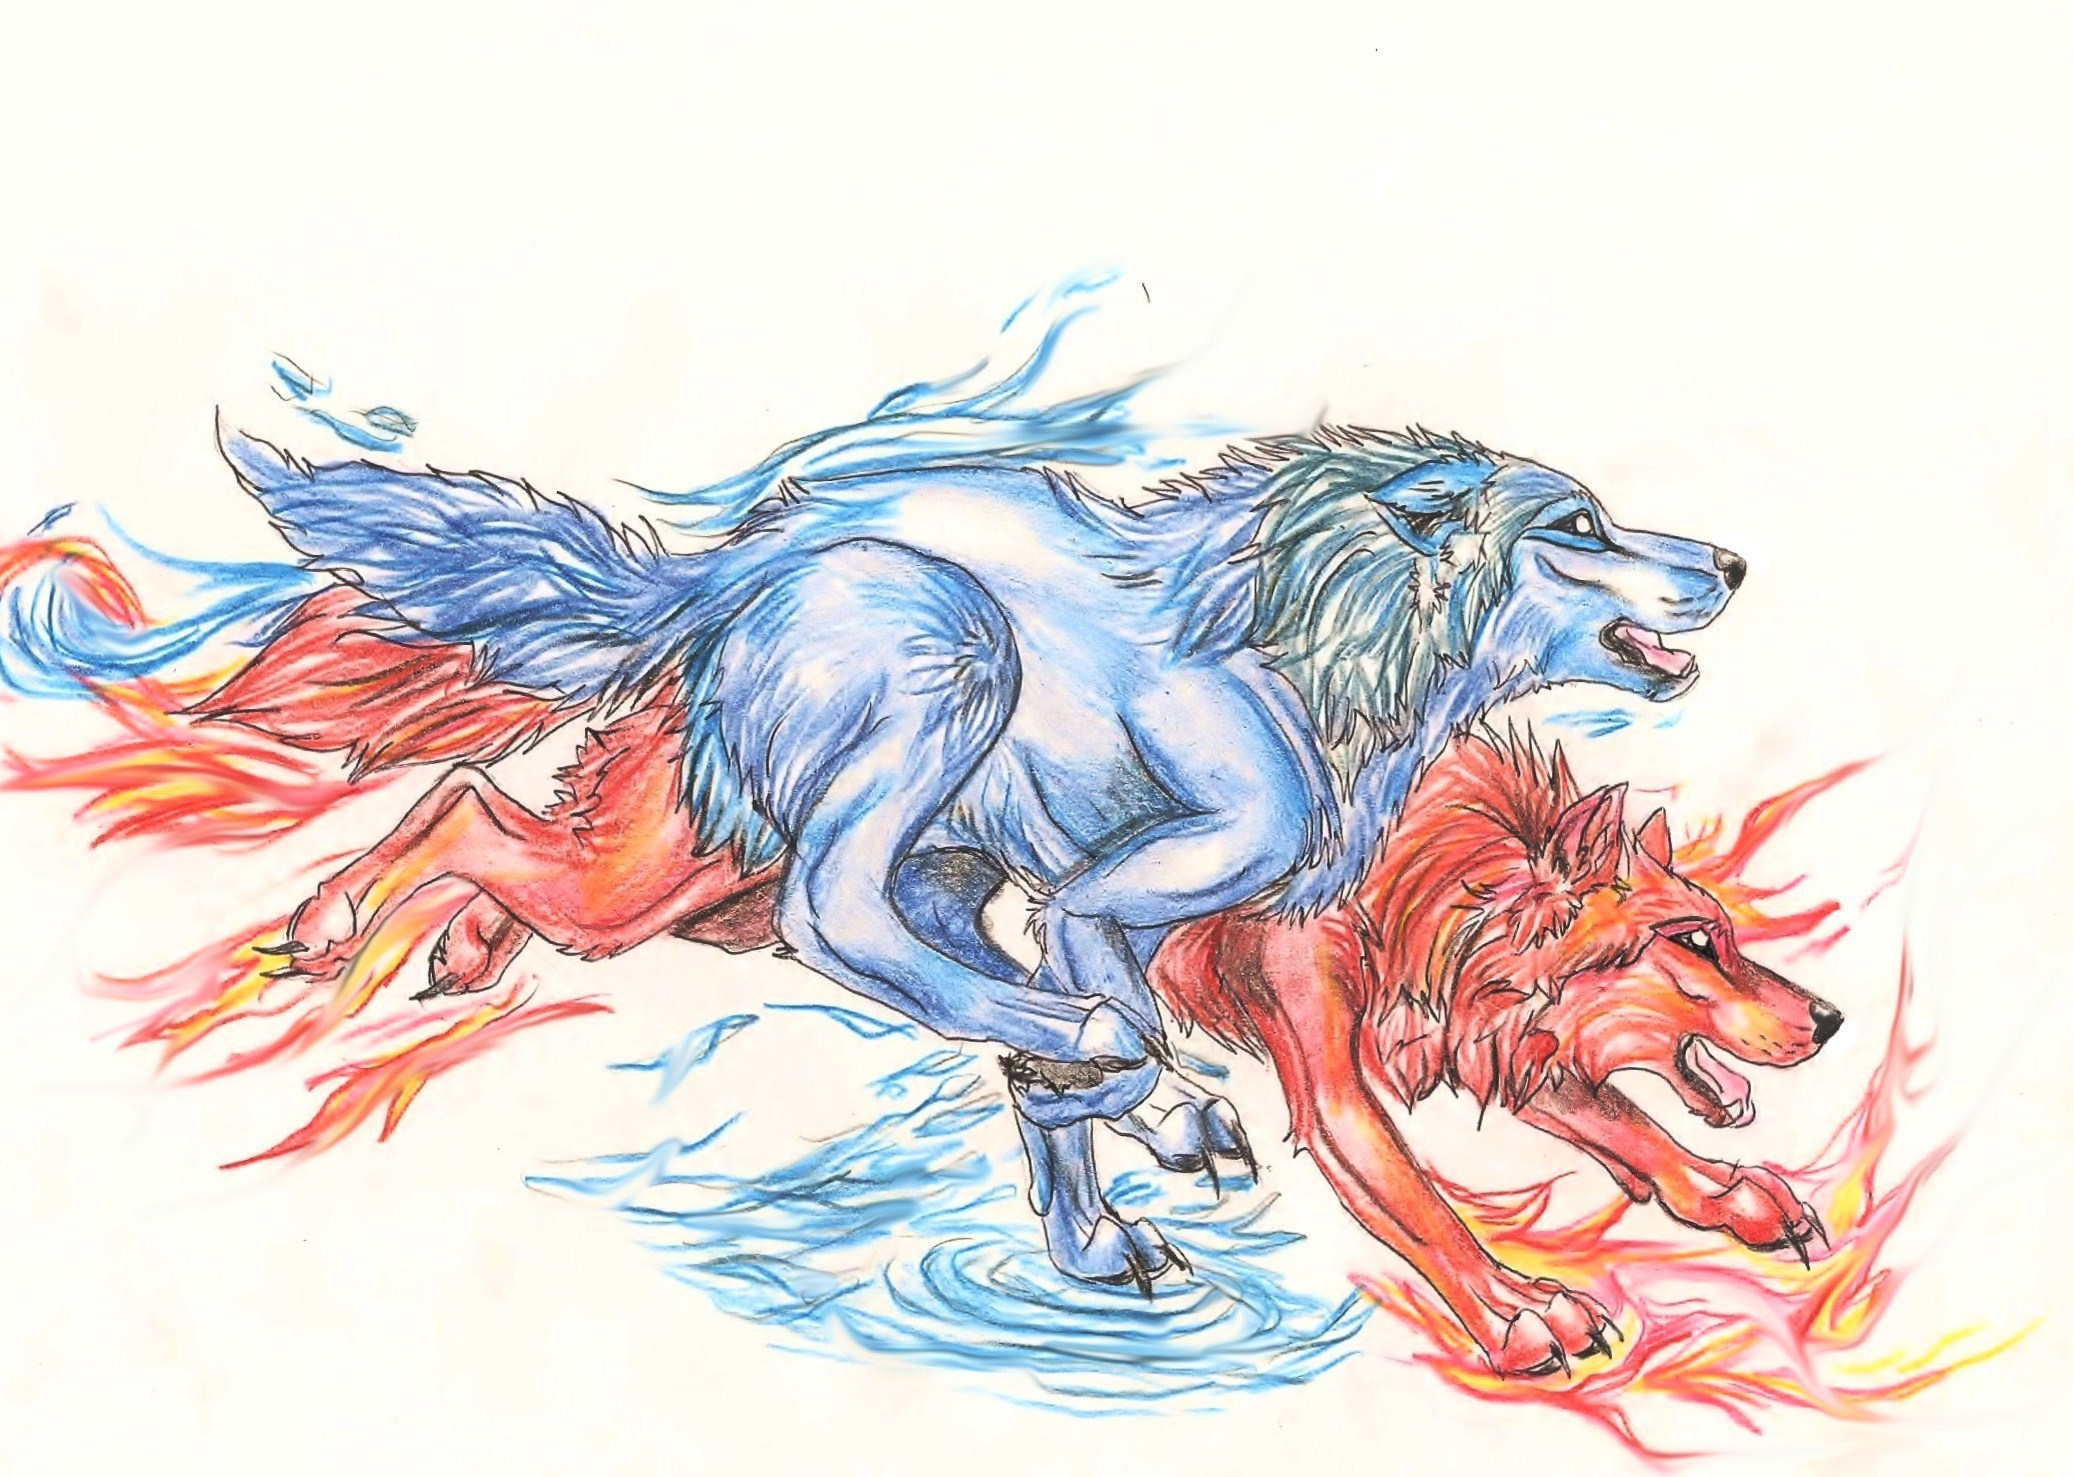 Wolves Spirit War: Fire and Ice, a roleplay on RolePlayGateway